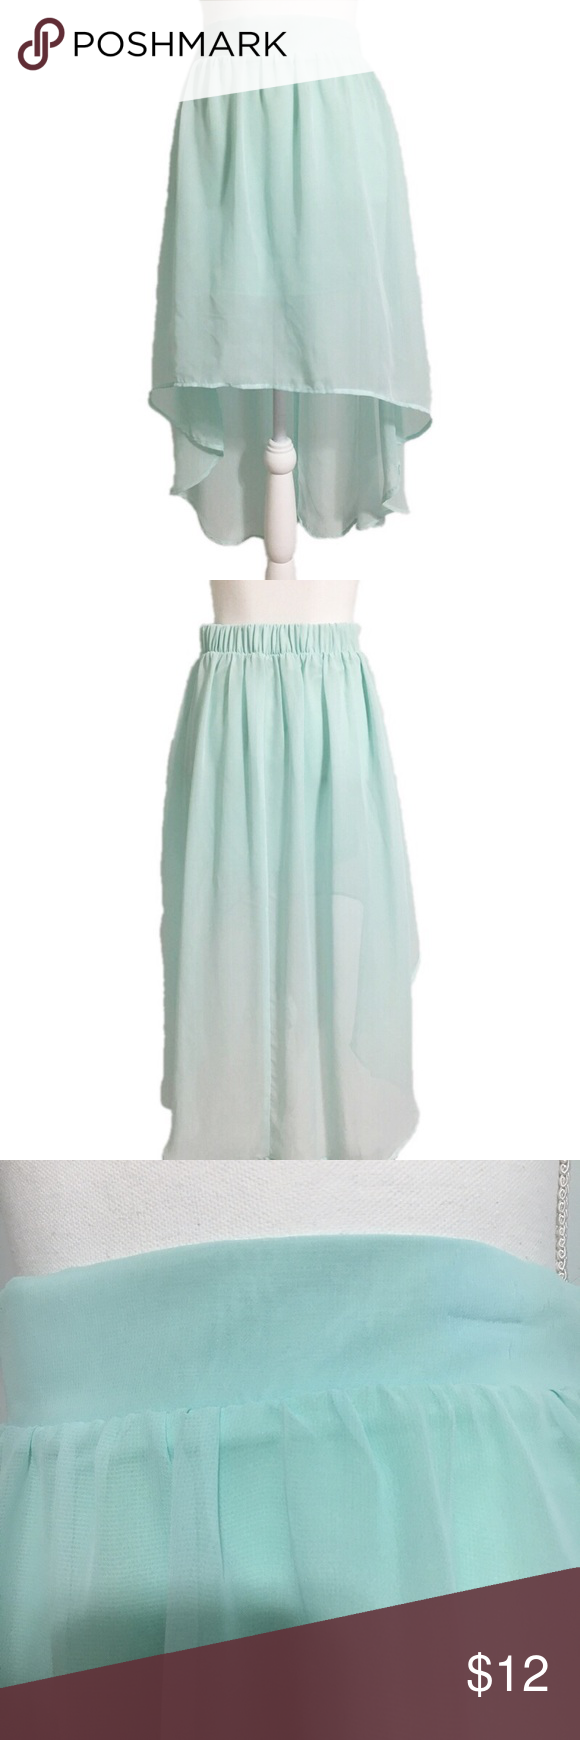 NWOT Charlotte Russe Turquoise Hi Lo Skirt Size S | High low skirt ...